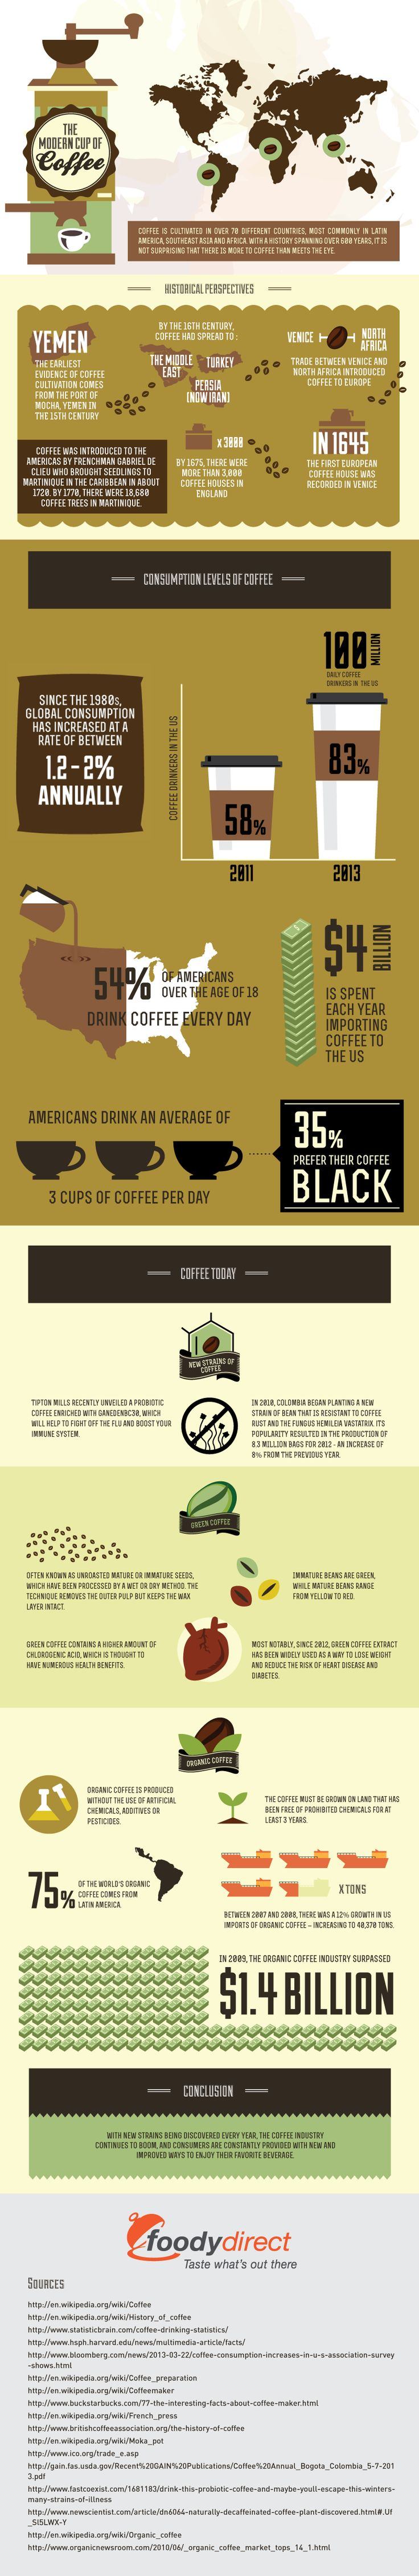 The Modern Cup Of Coffee #Infographic #Coffee #Food